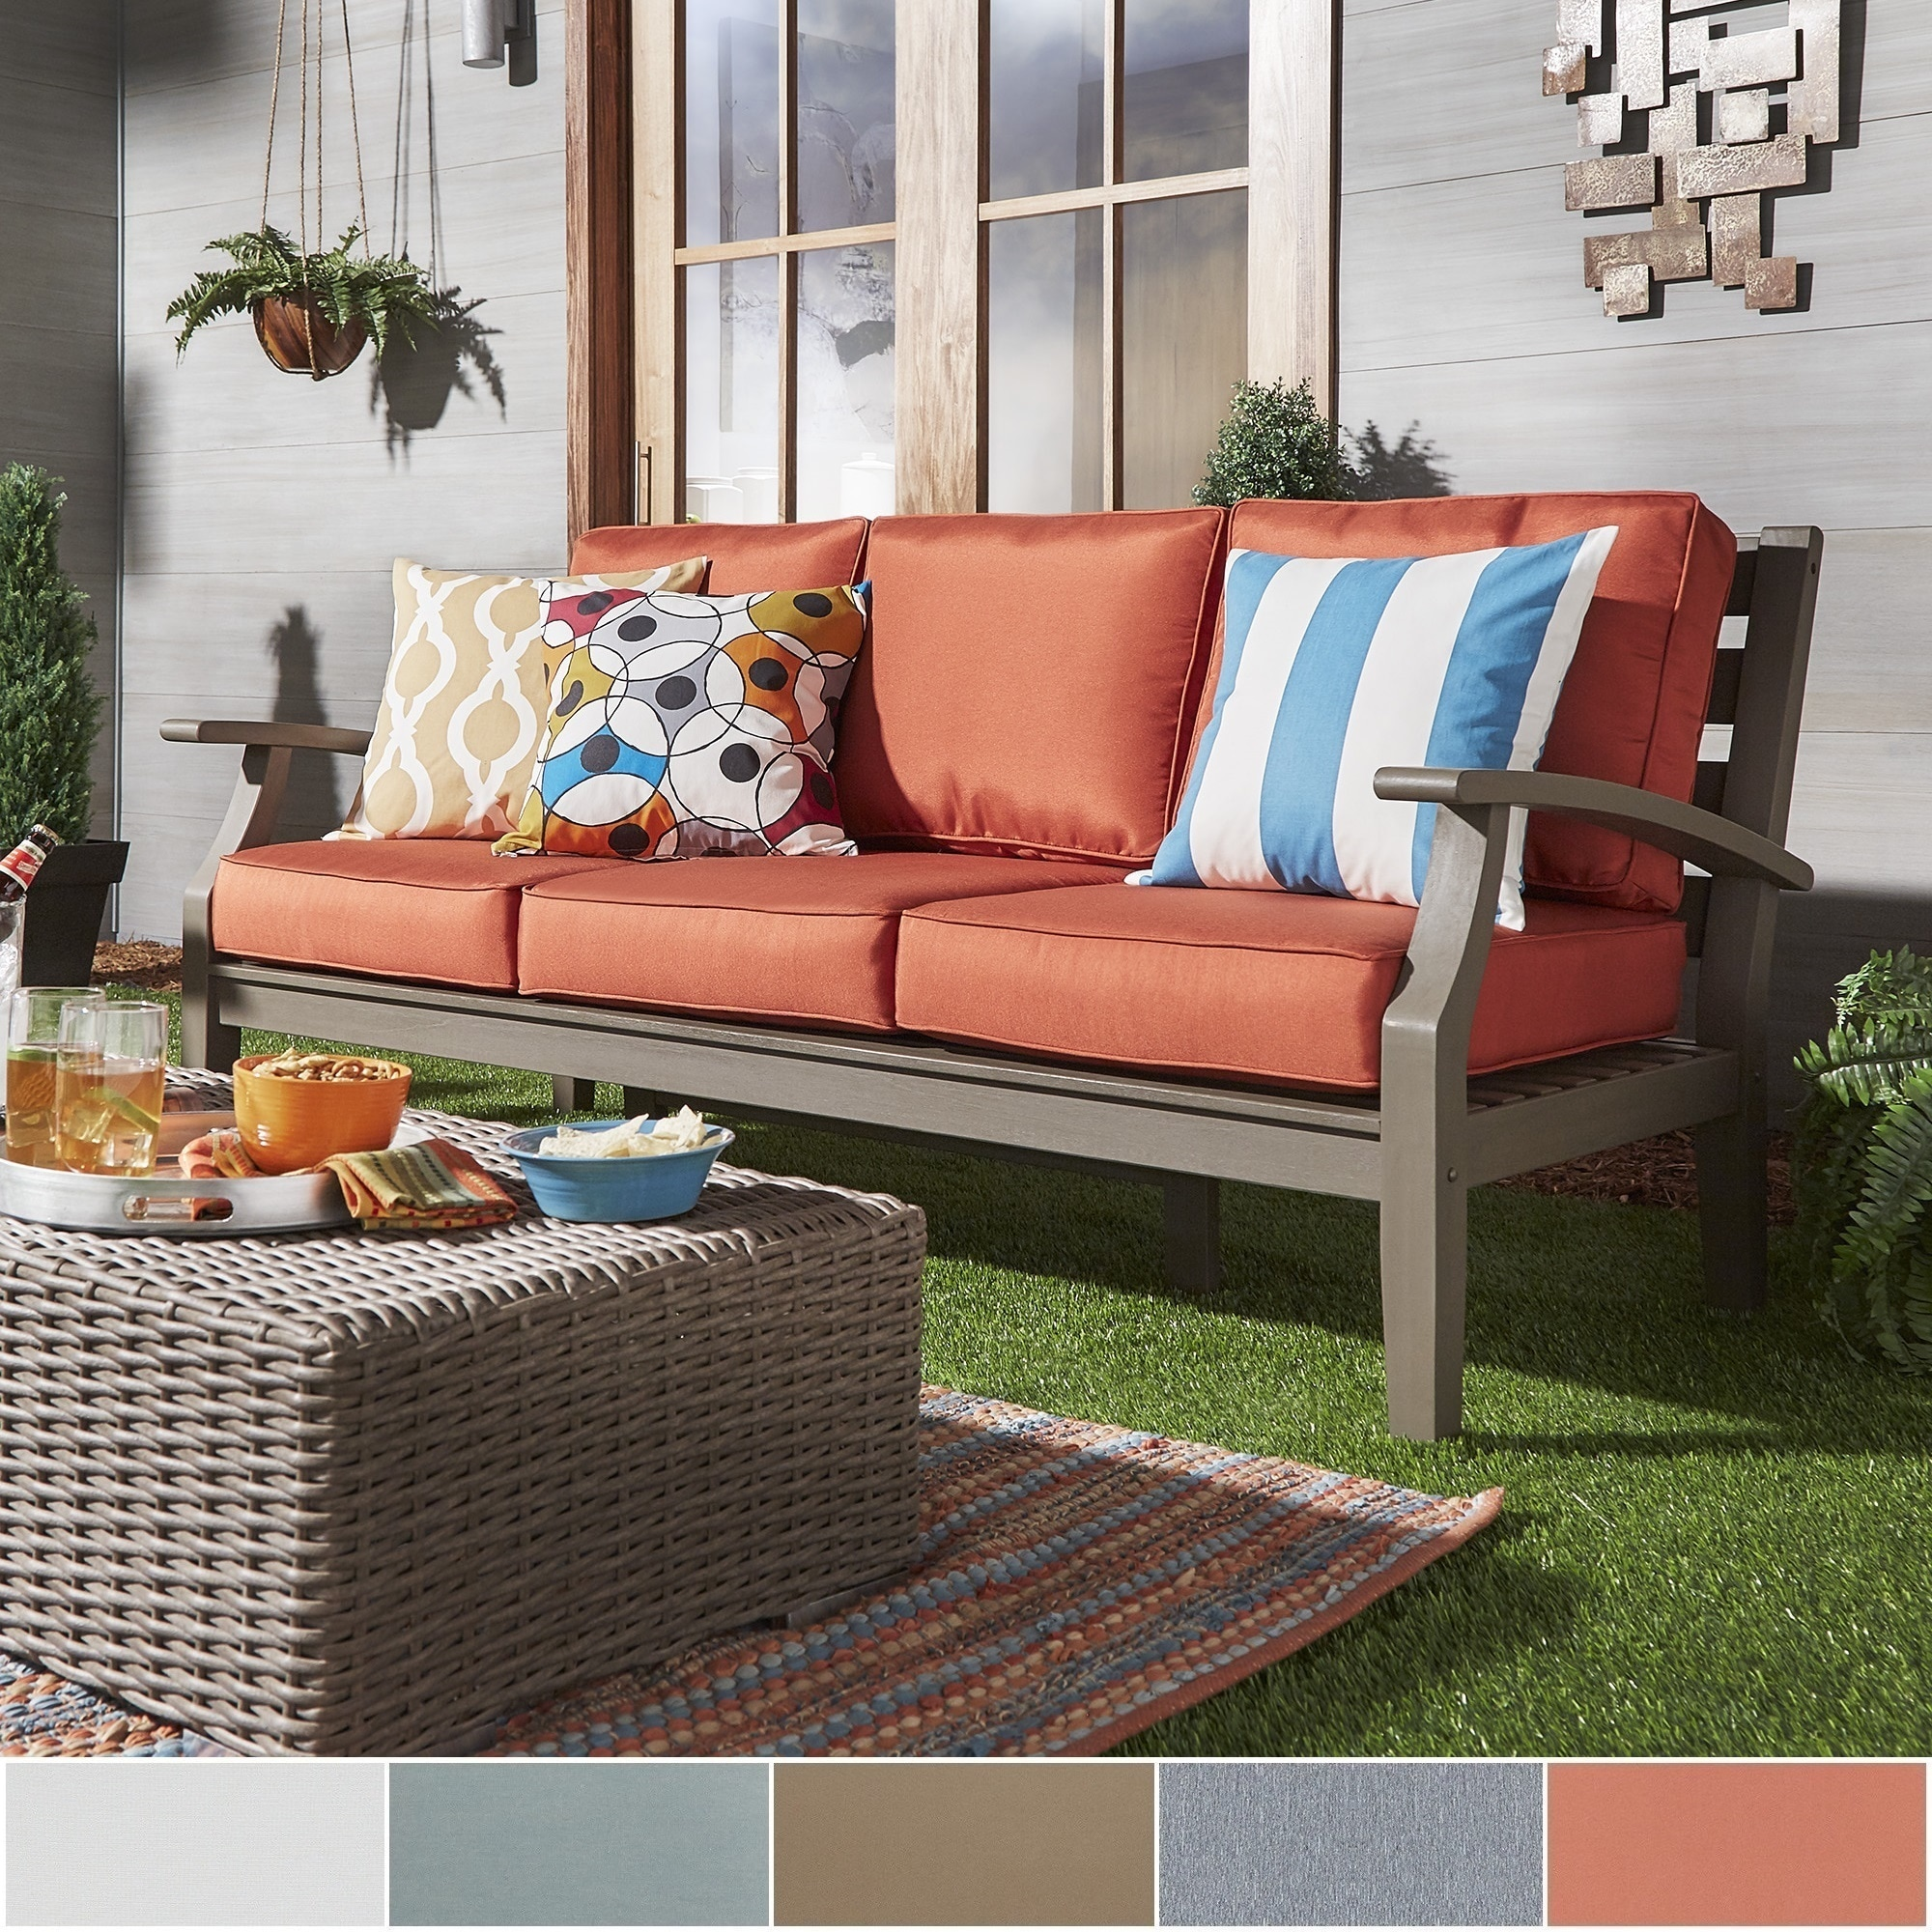 Yasawa Grey Modern Outdoor Cushioned Wood Sofa iNSPIRE Q Oasis - Free  Shipping Today - Overstock.com - 19913993